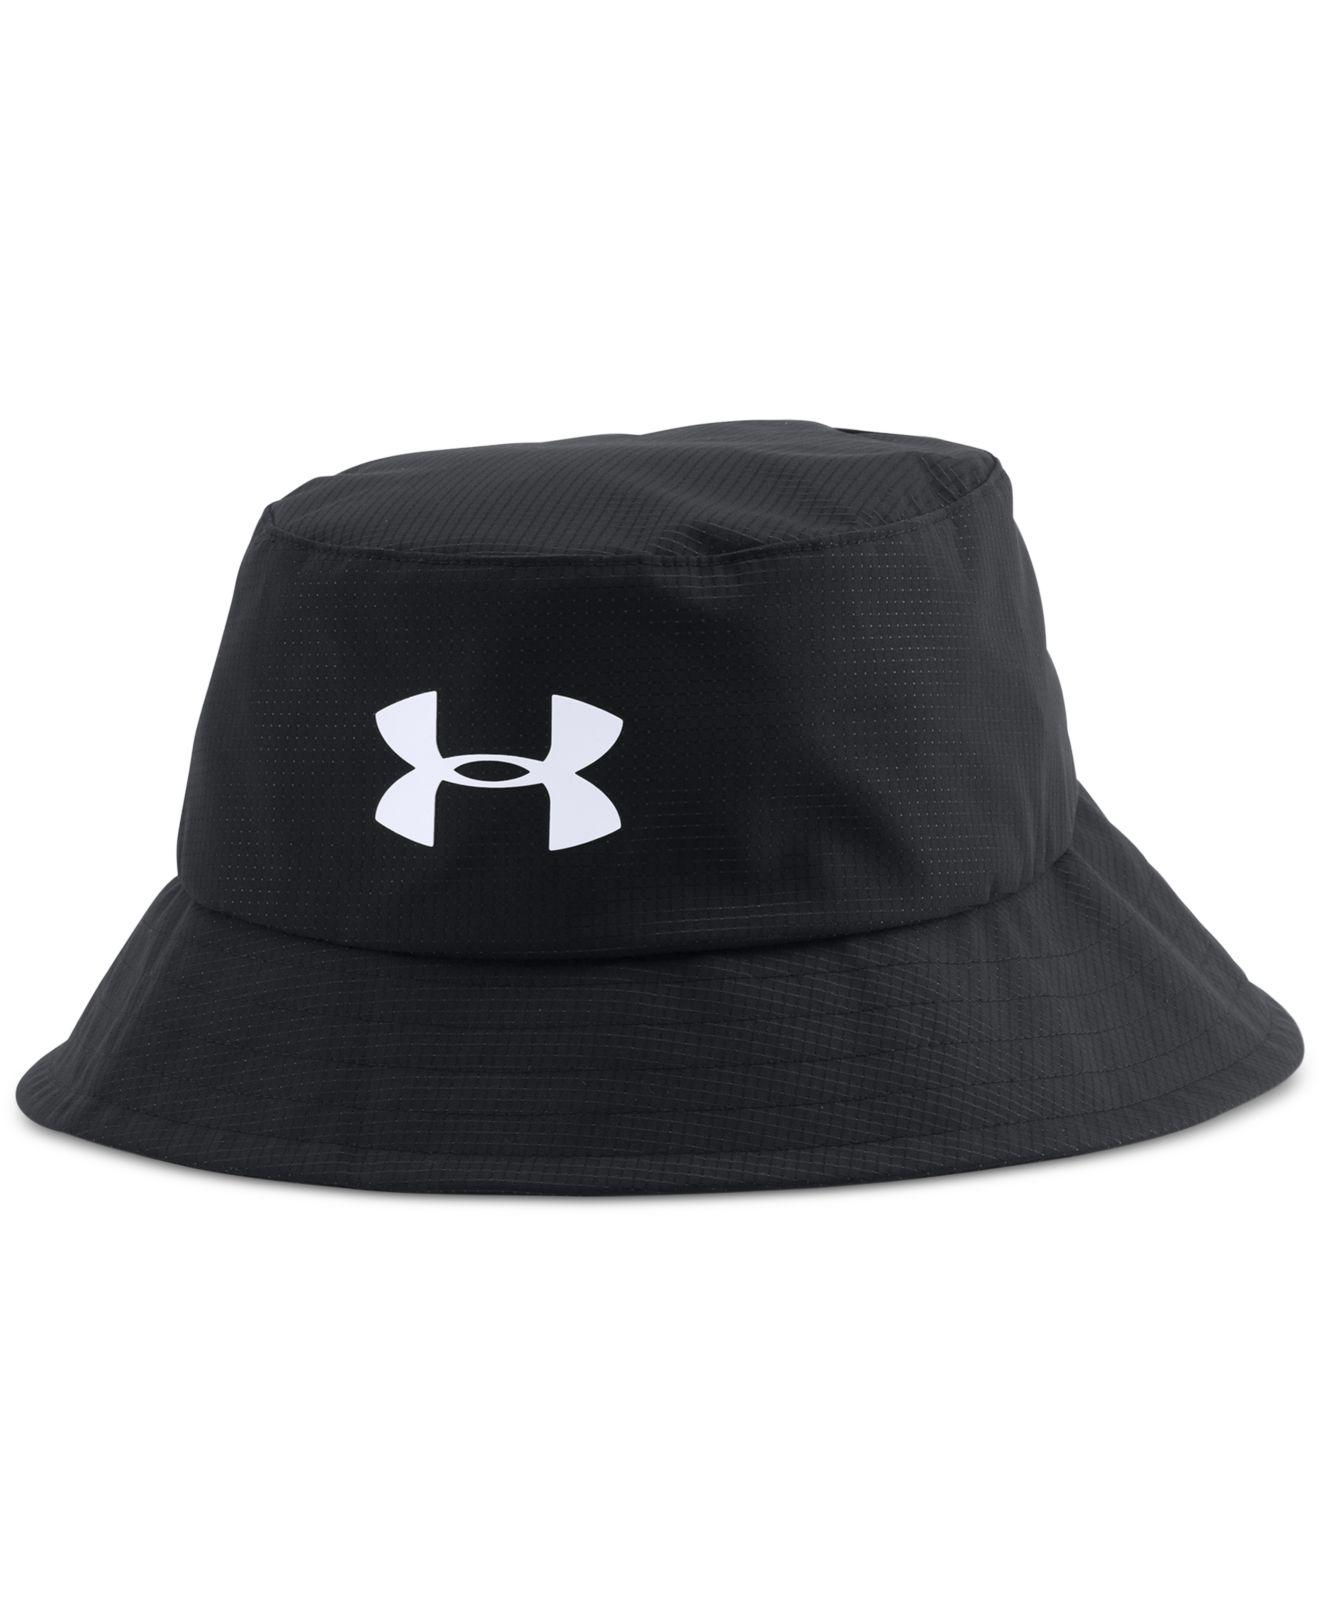 Lyst Under Armour Men S Golf Bucket Hat In Black For Men